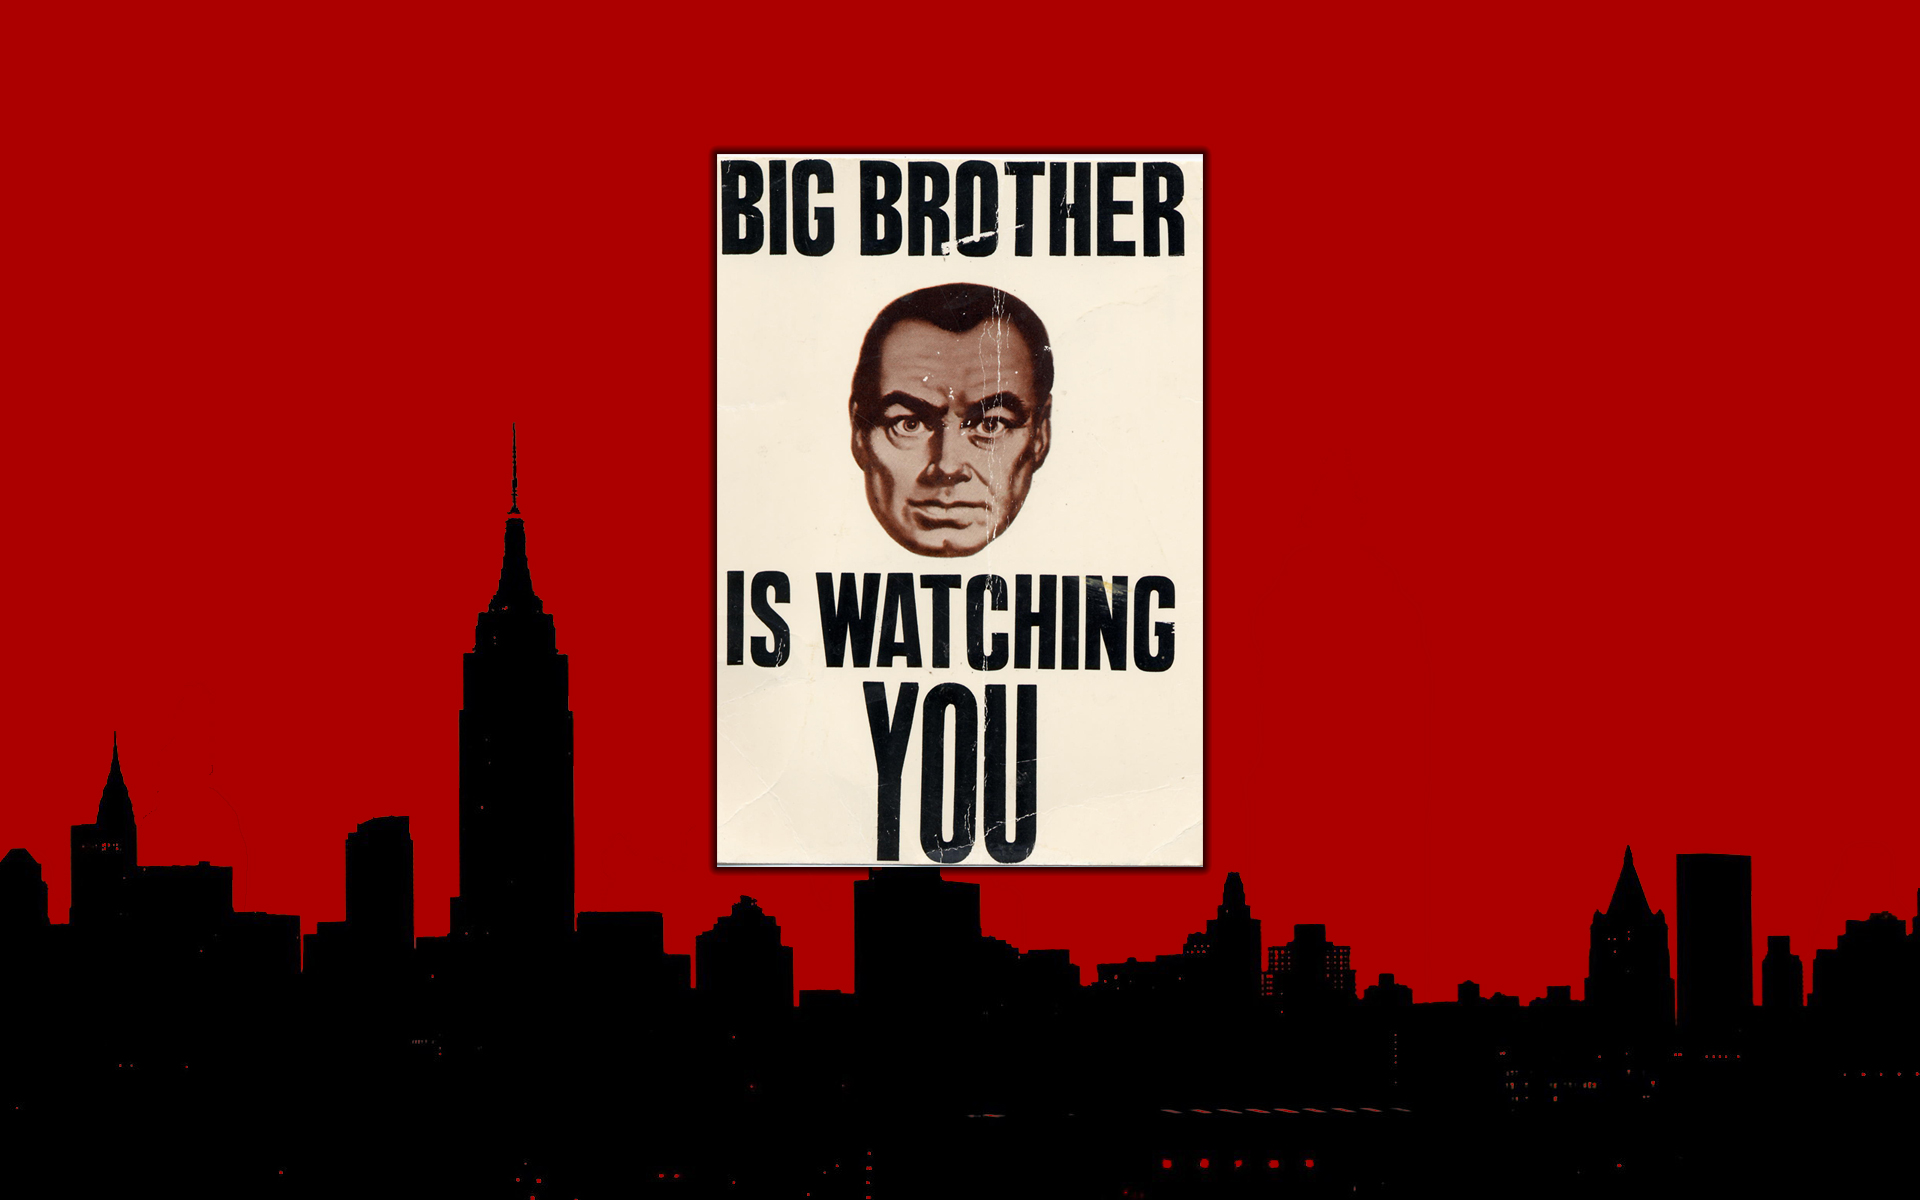 big brother watching you 1984 george orwell Martin Semmelrogge